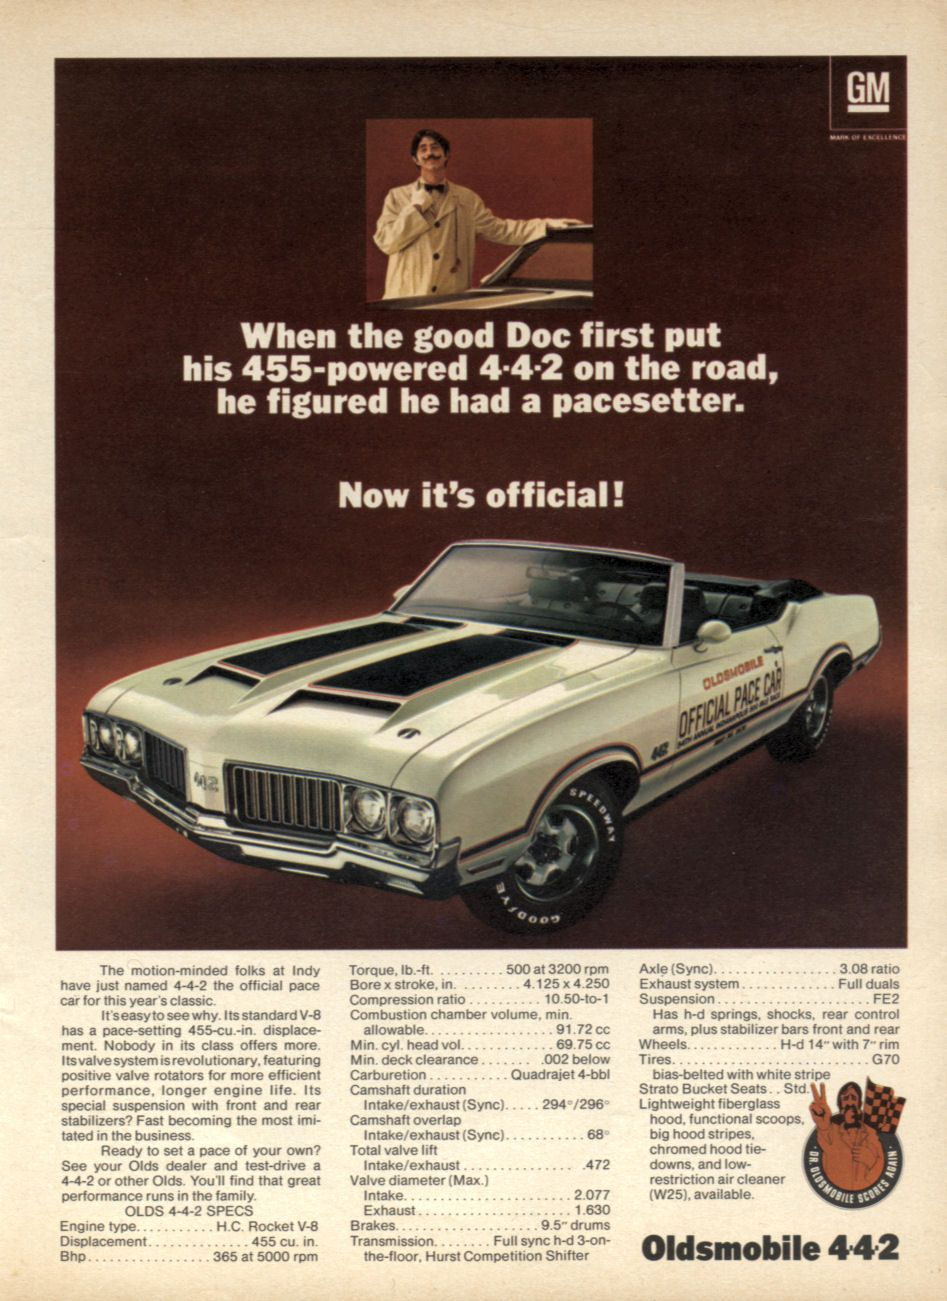 Vintage Car Ads From The 1970s Old Car Ads Home Old Car